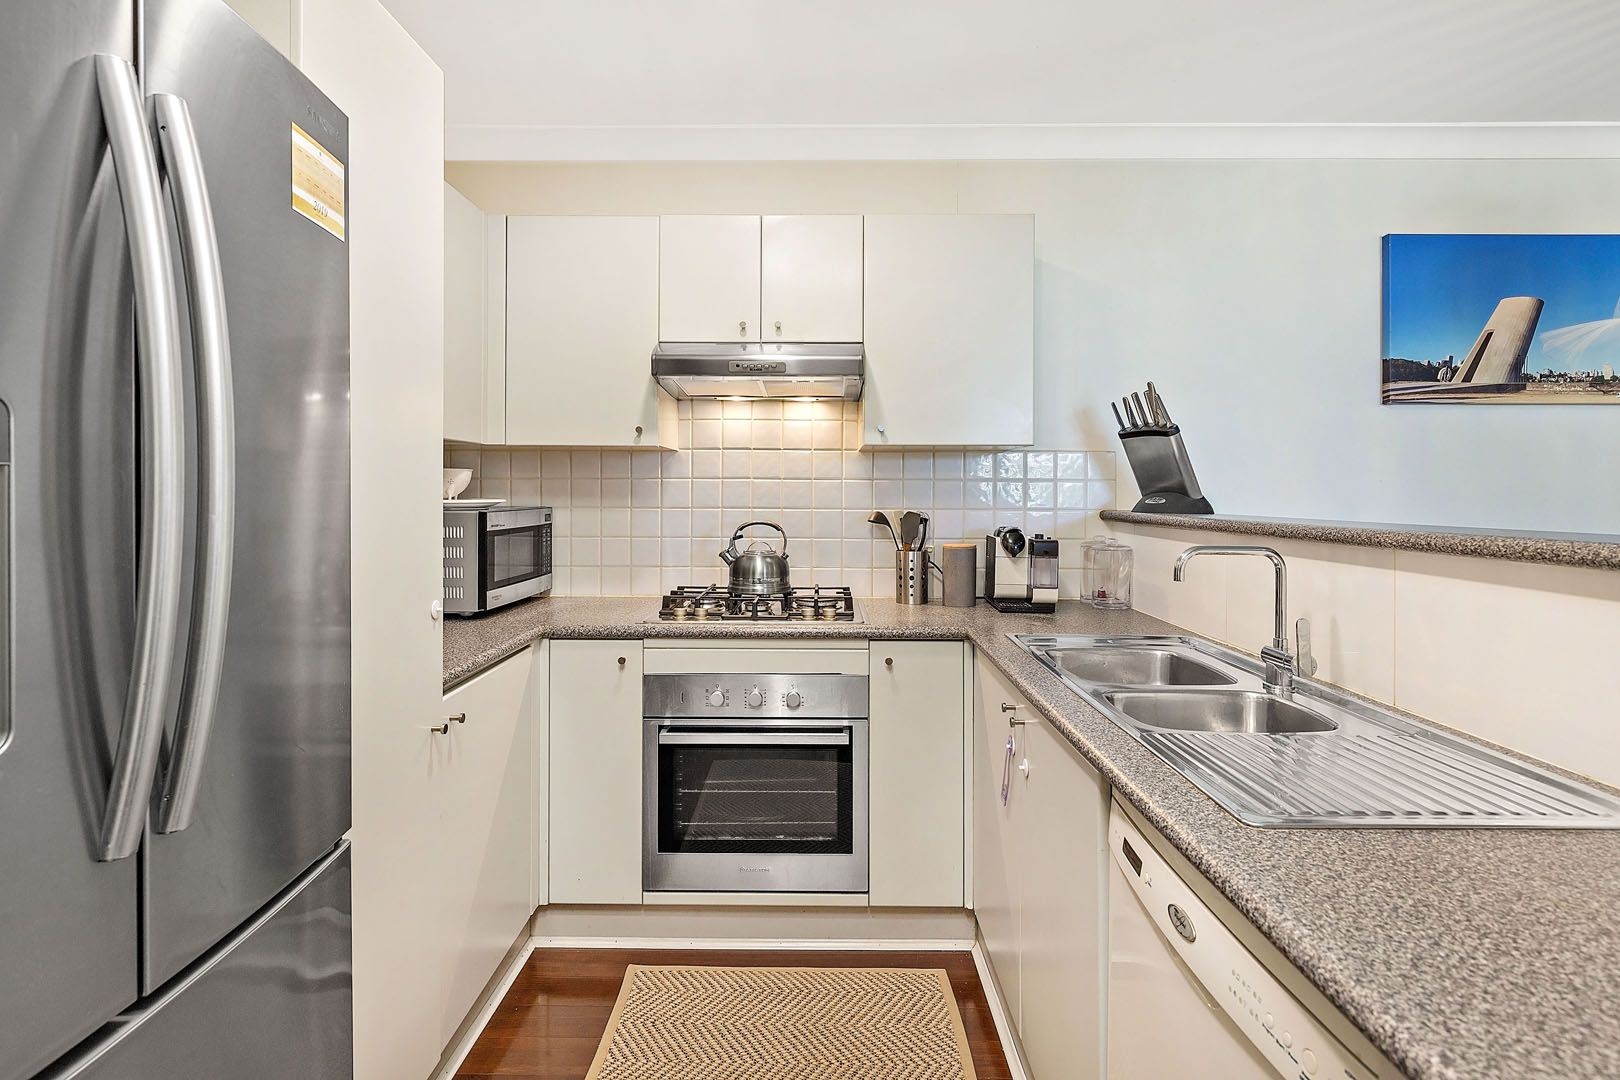 17A/19-21 George Street, North Strathfield NSW 2137, Image 2